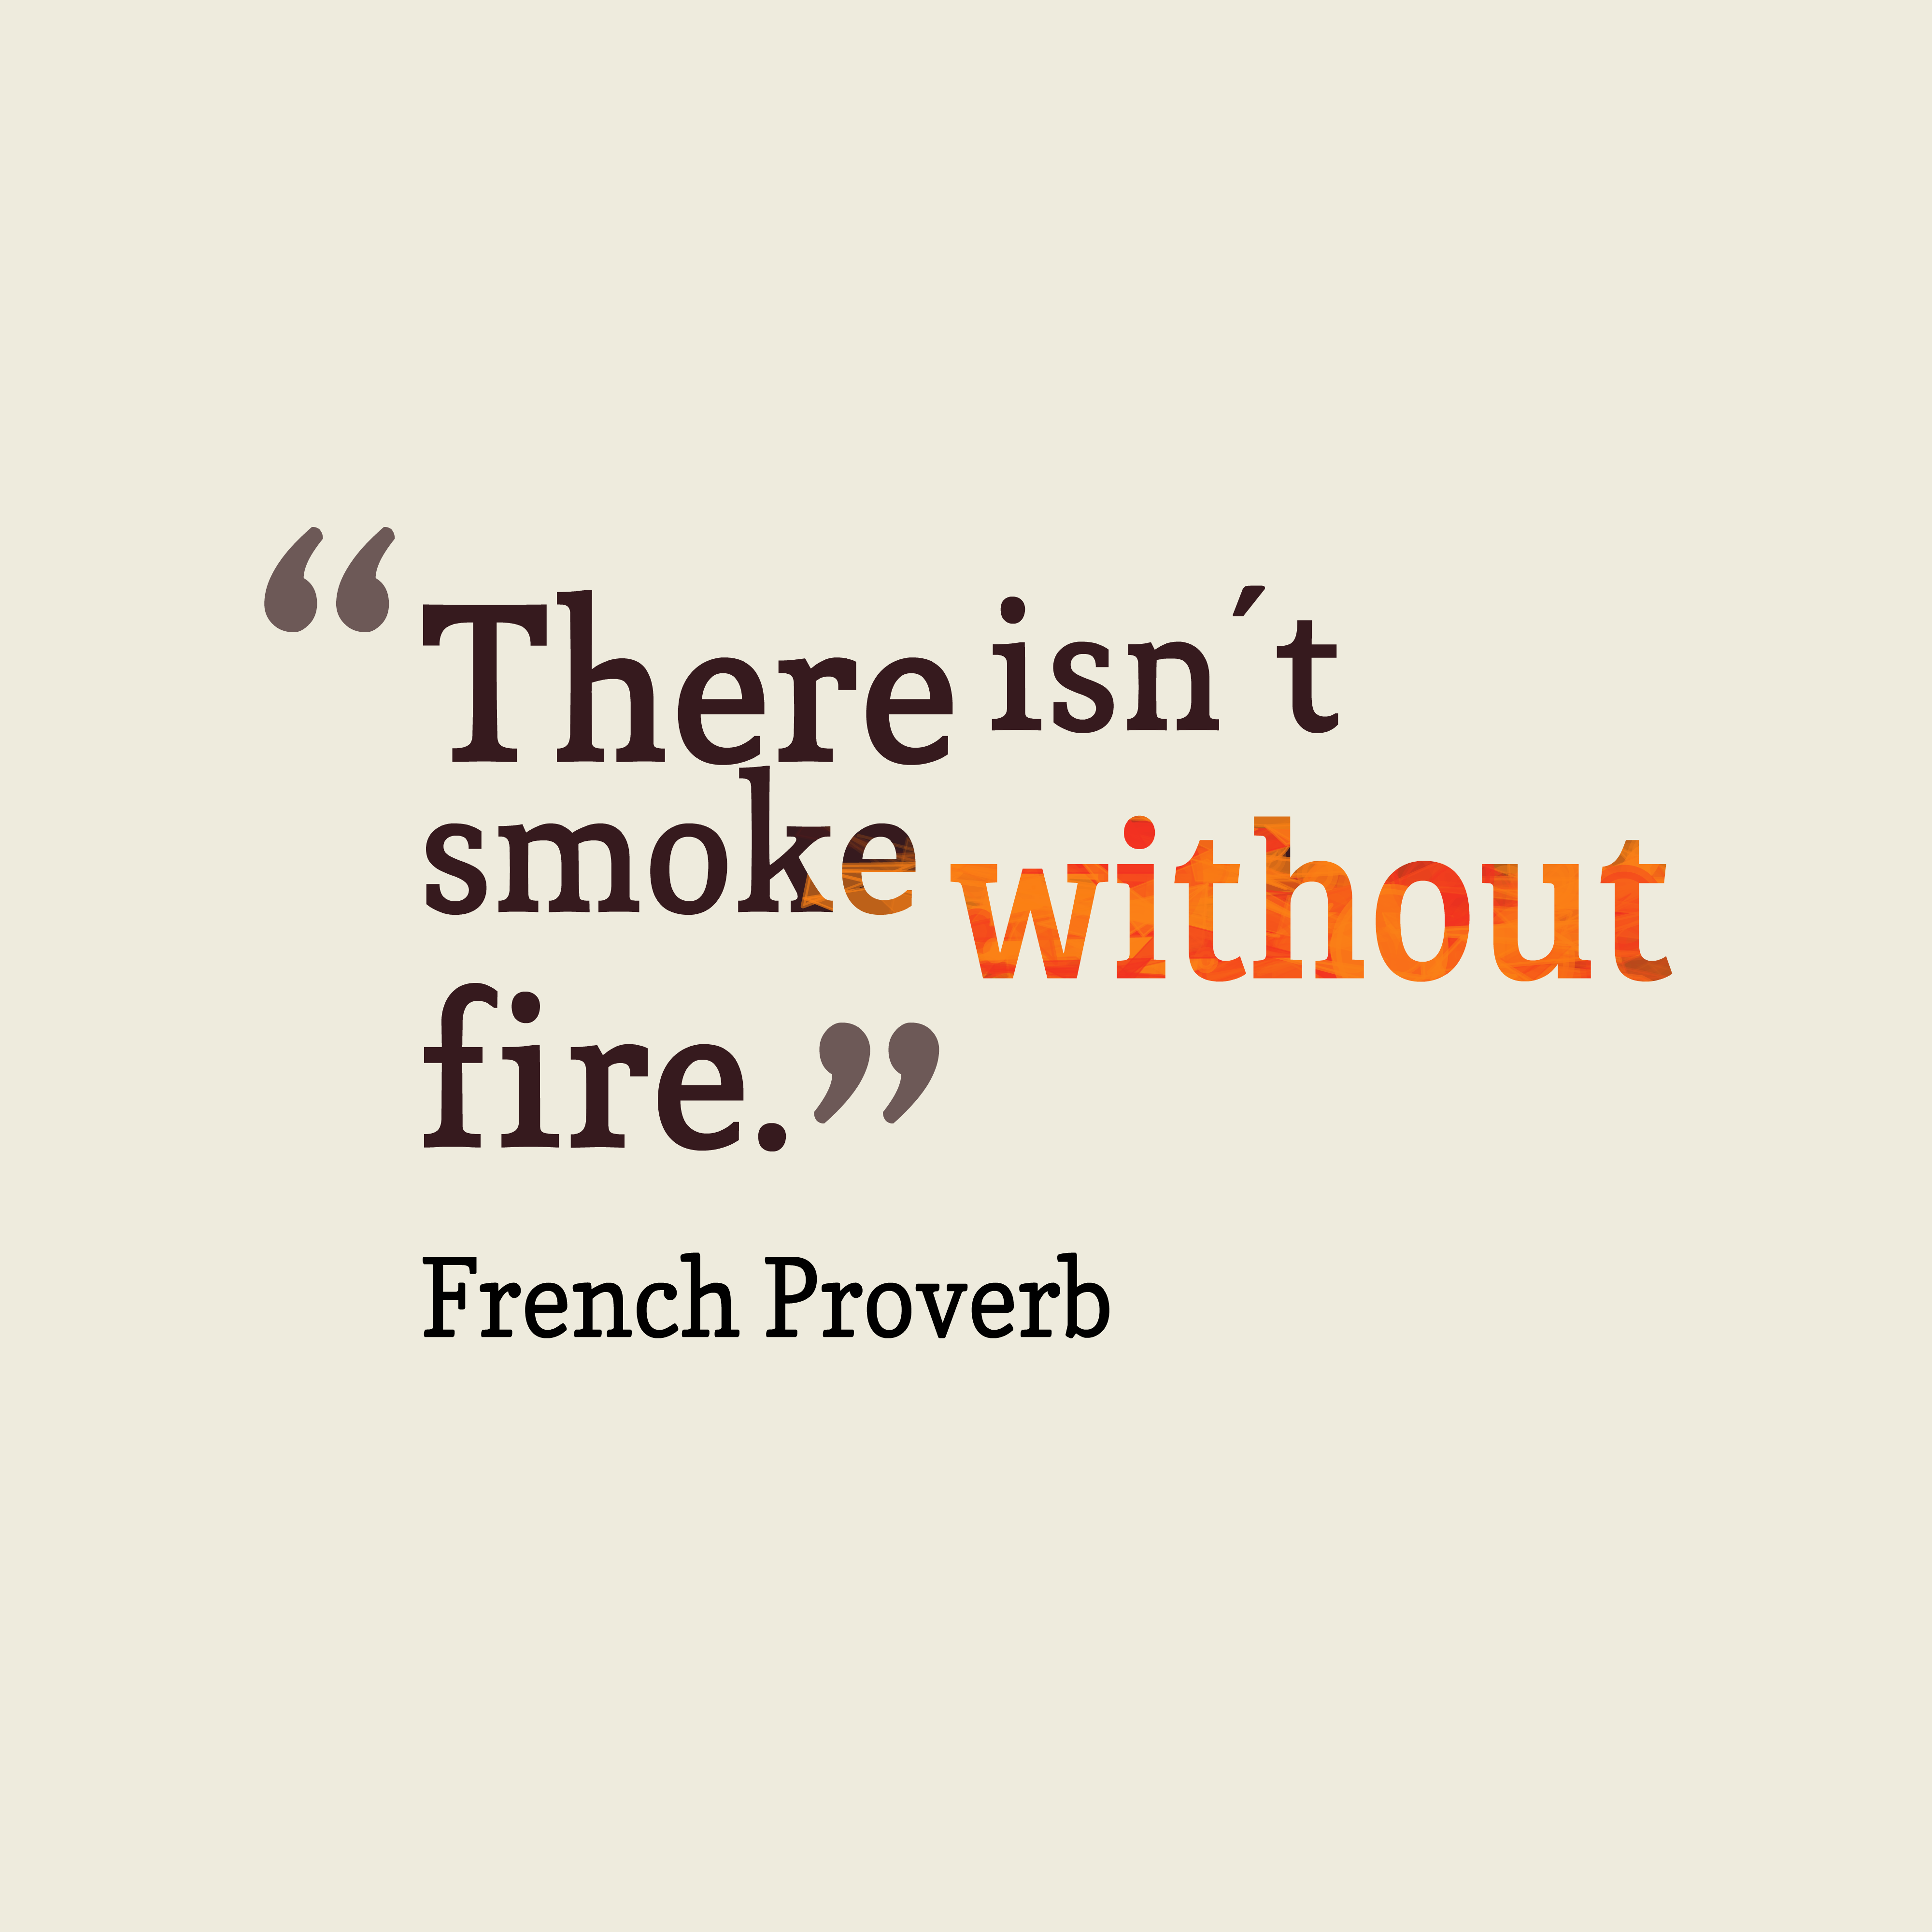 French wisdom about cause and effect